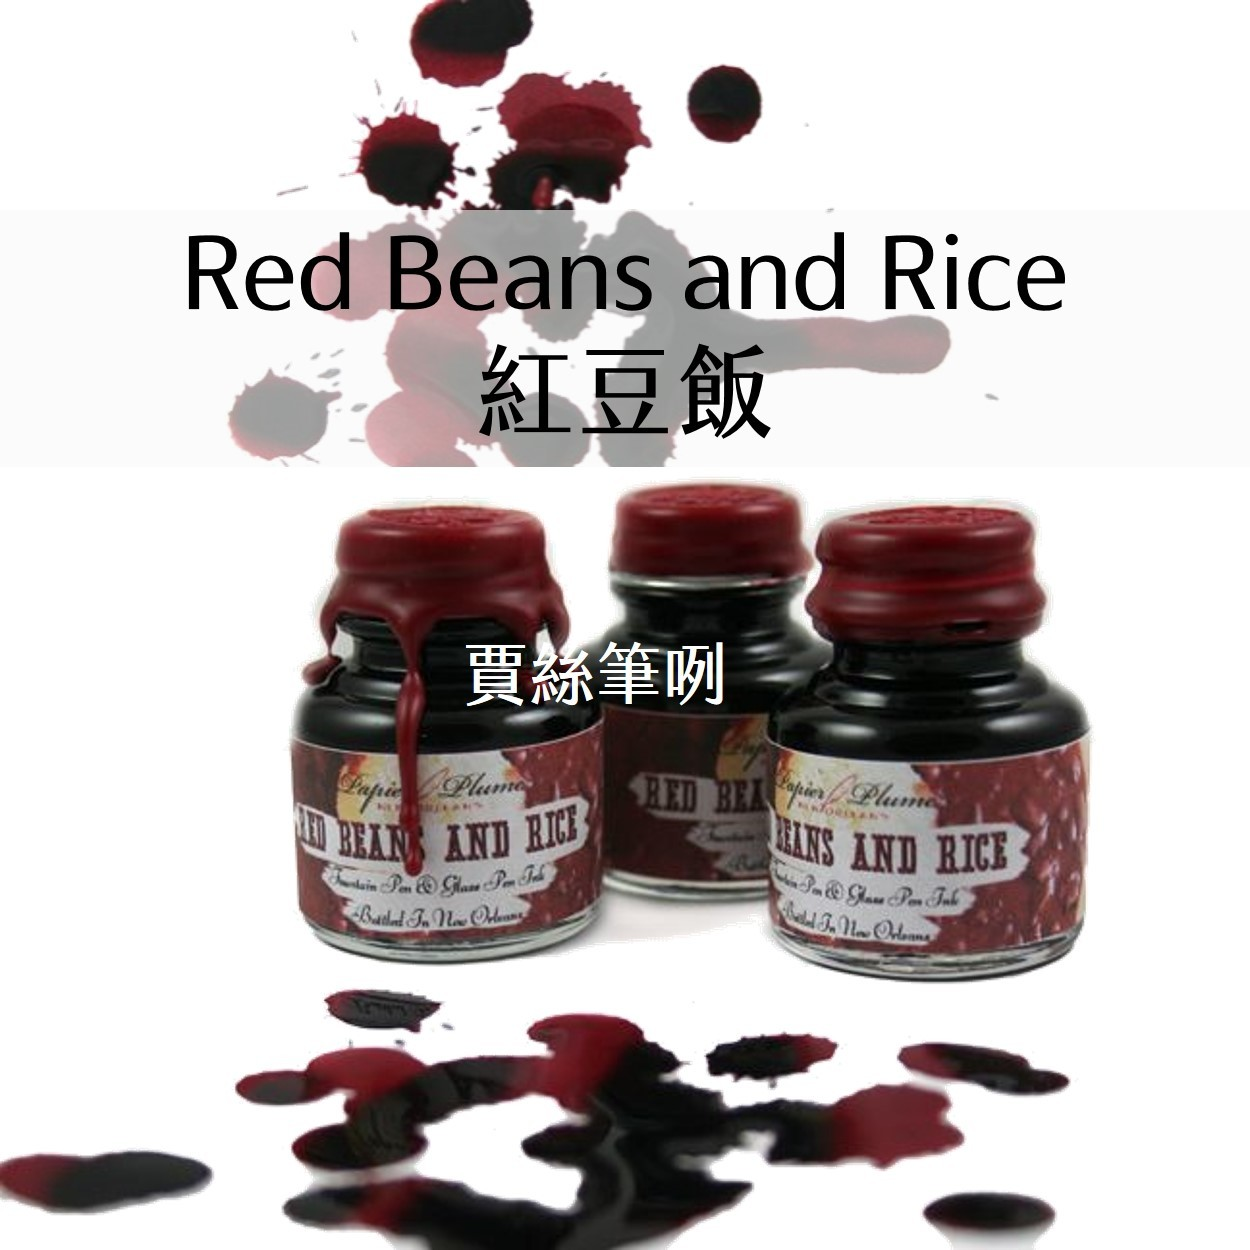 NO - Red Beans and Rice 紅豆飯.jpg